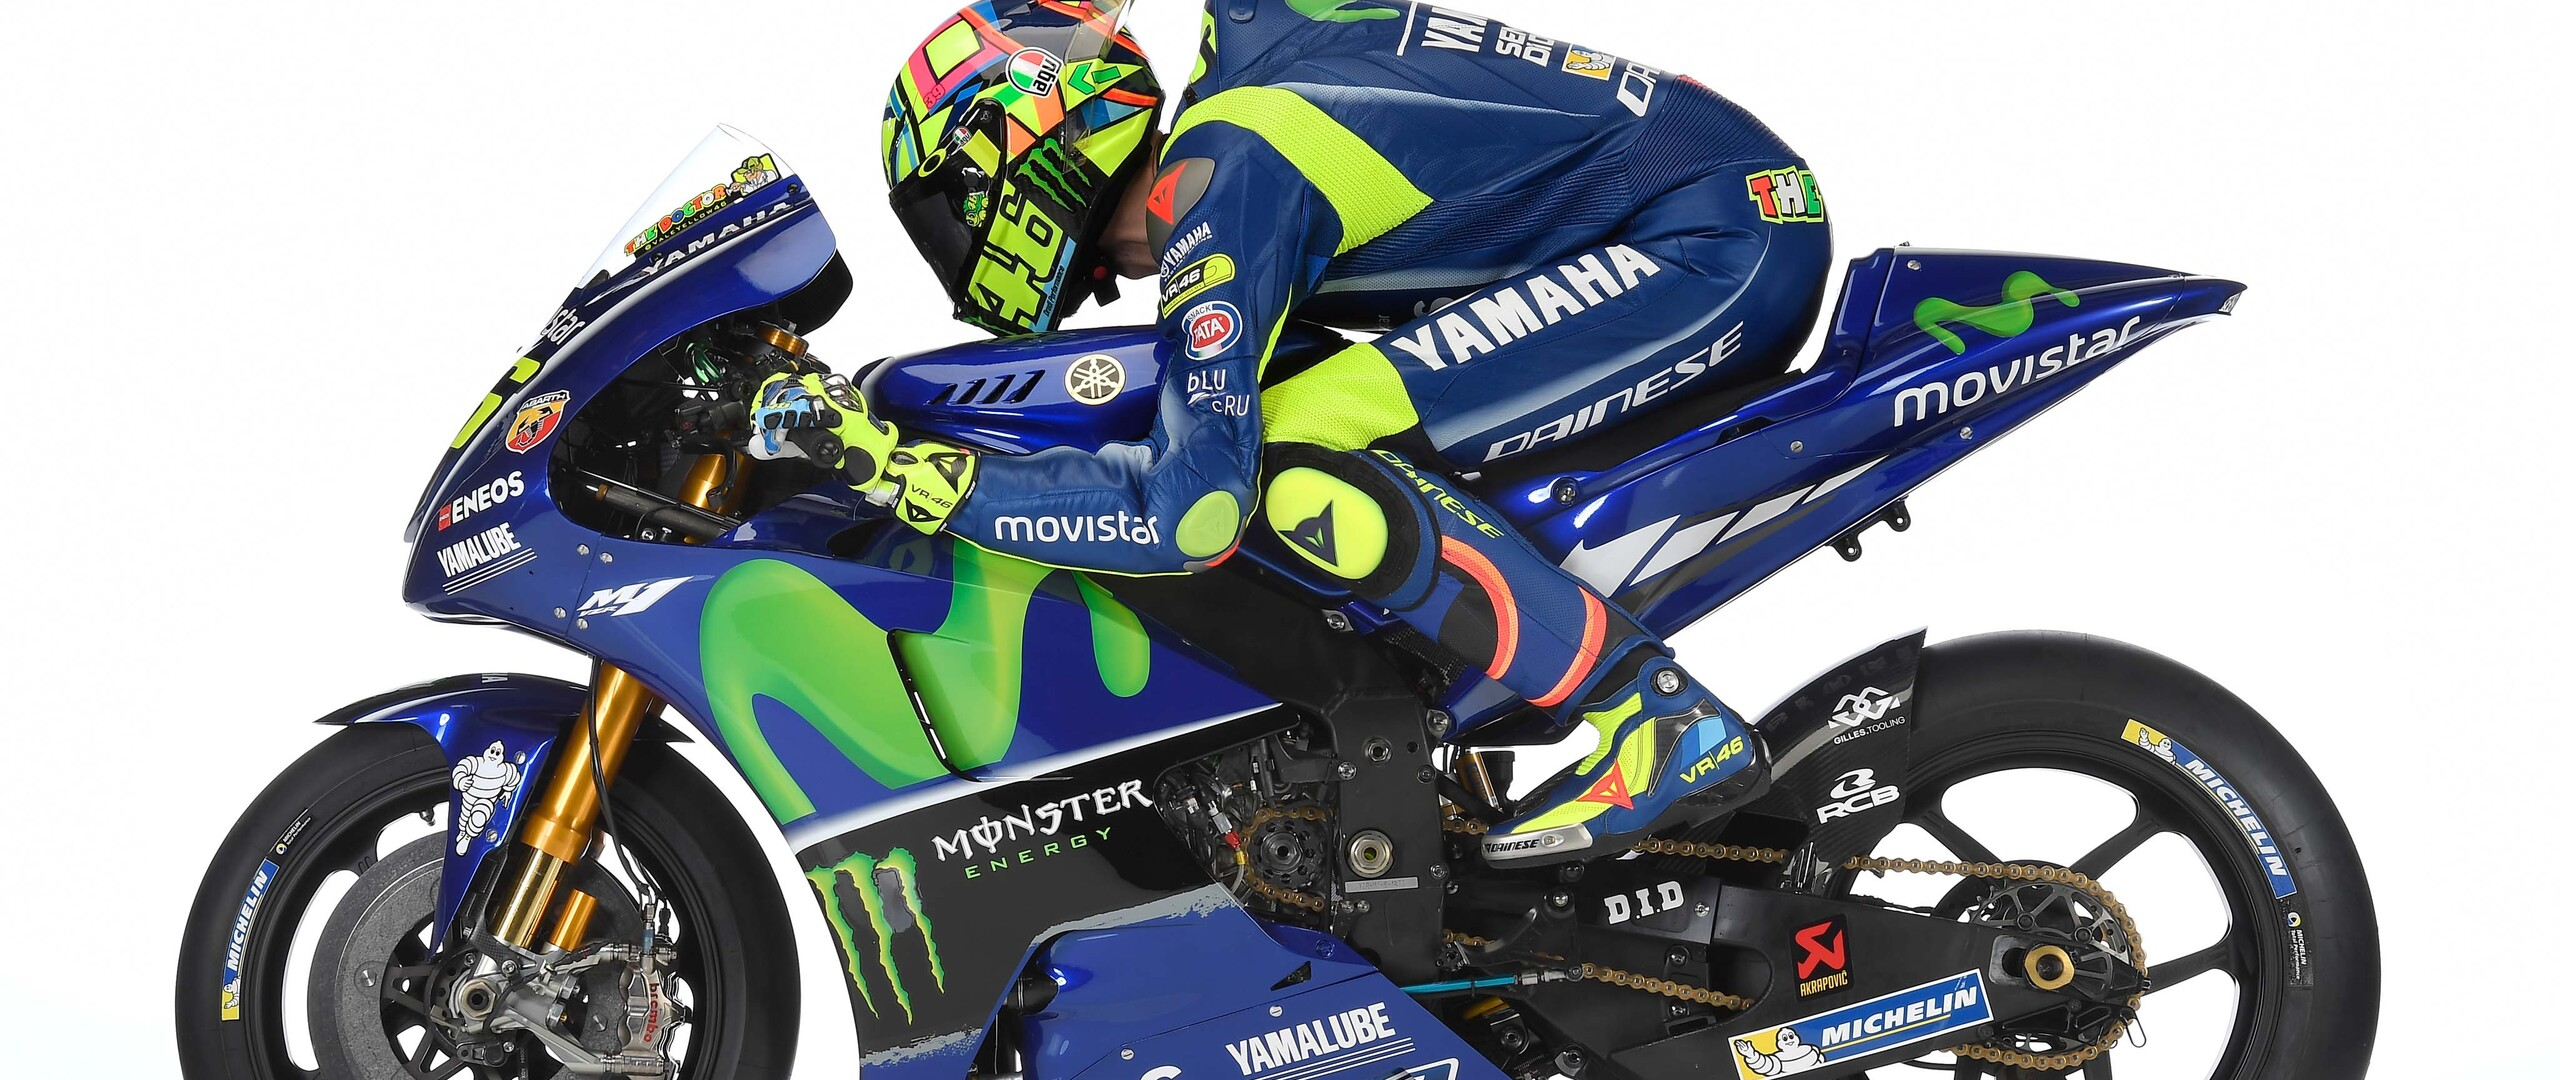 2560x1080 Motogp Valentino Rossi Yamaha YZR M1 2560x1080 Resolution HD 4k Wallpapers, Images